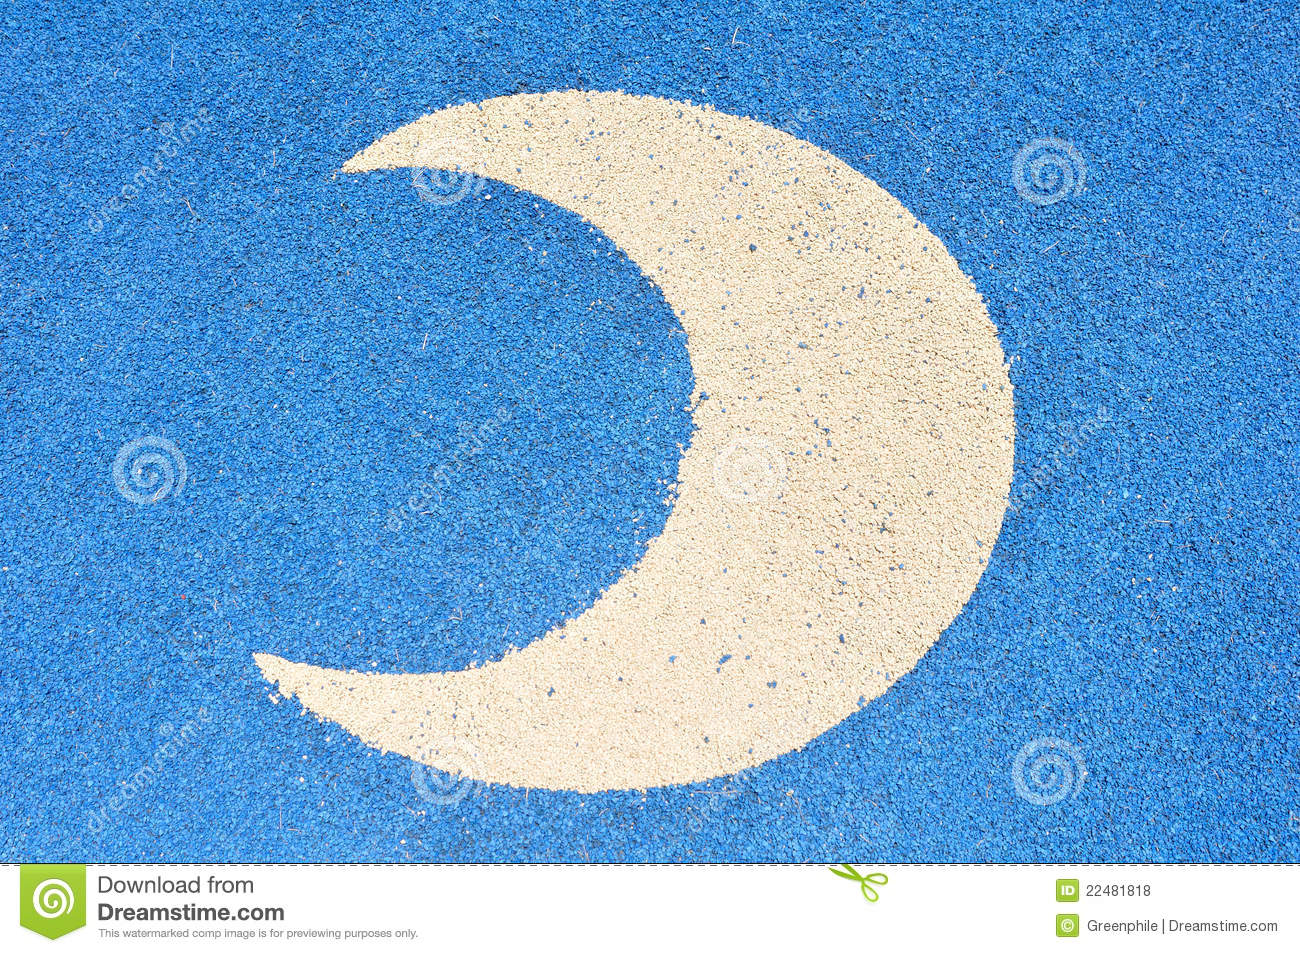 Crescent Moon Label Decorated On Jogging Lane Images